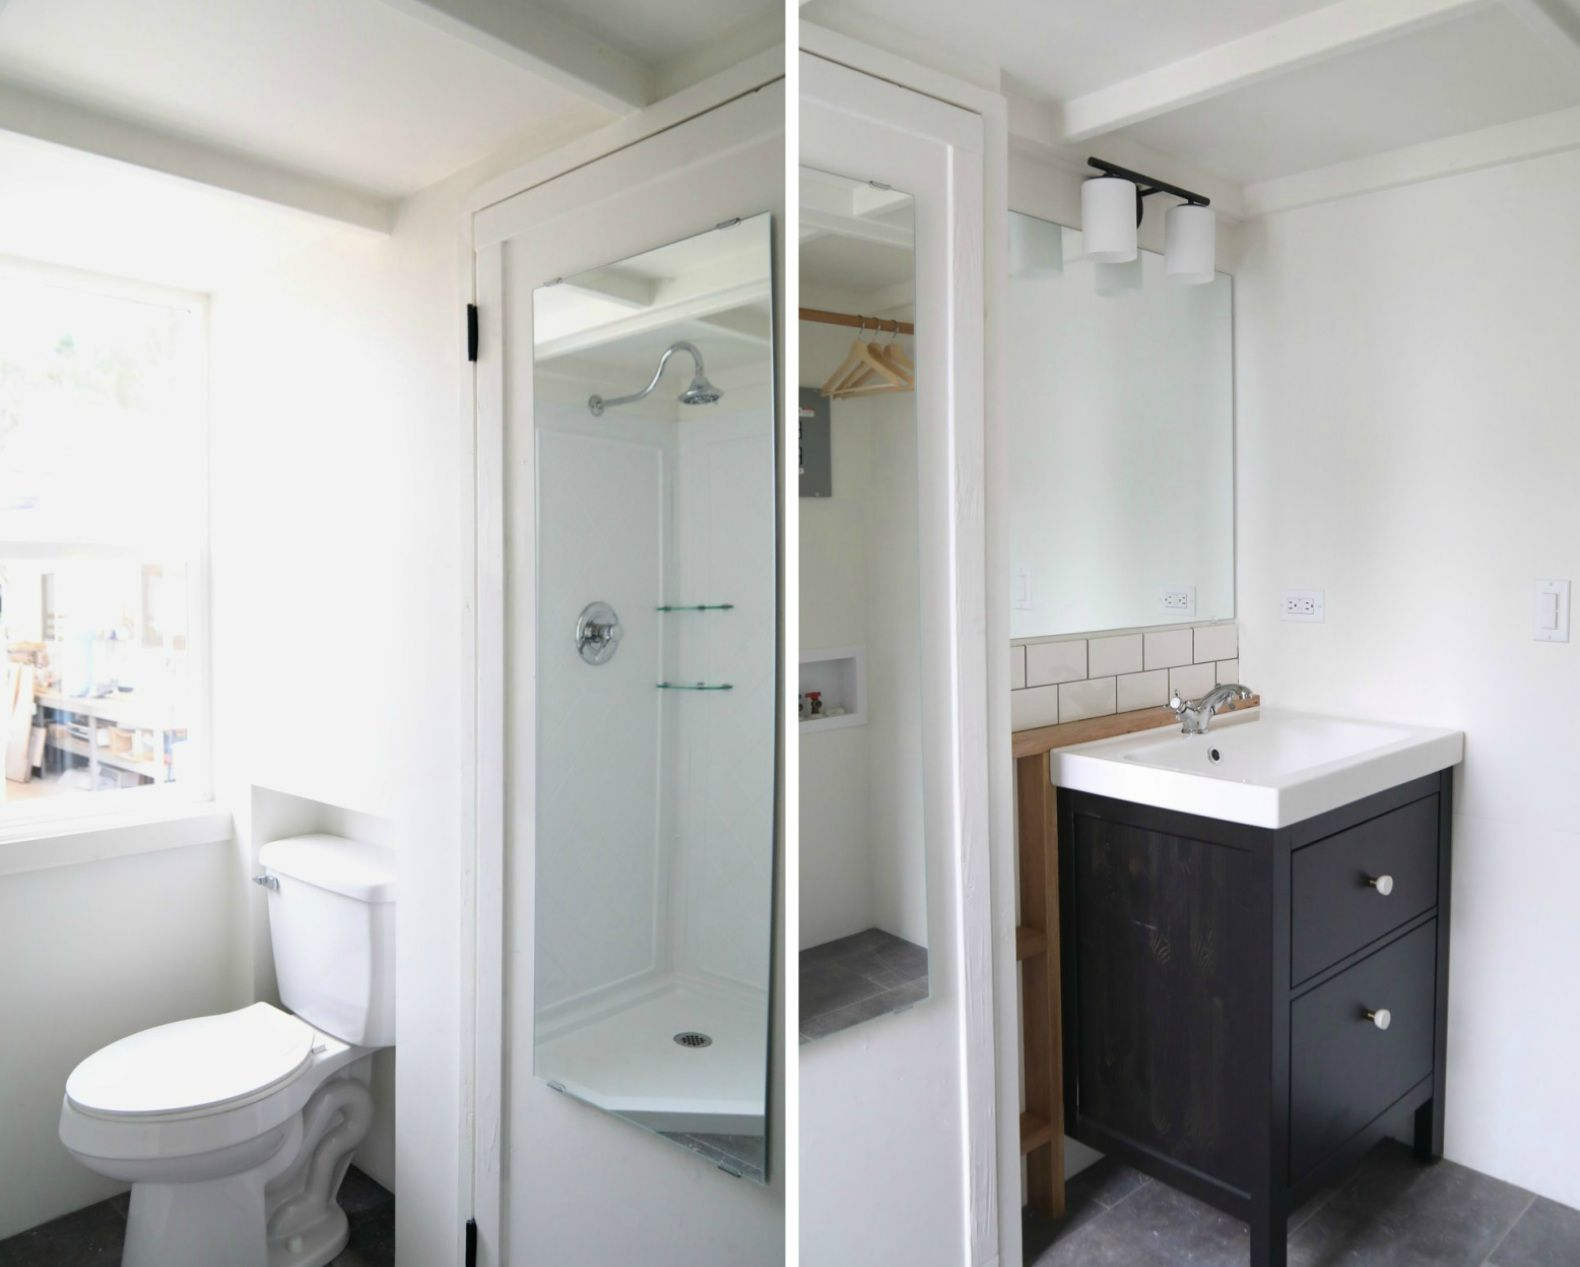 This custom-built tiny house is big on interior design | Tiny houses ...